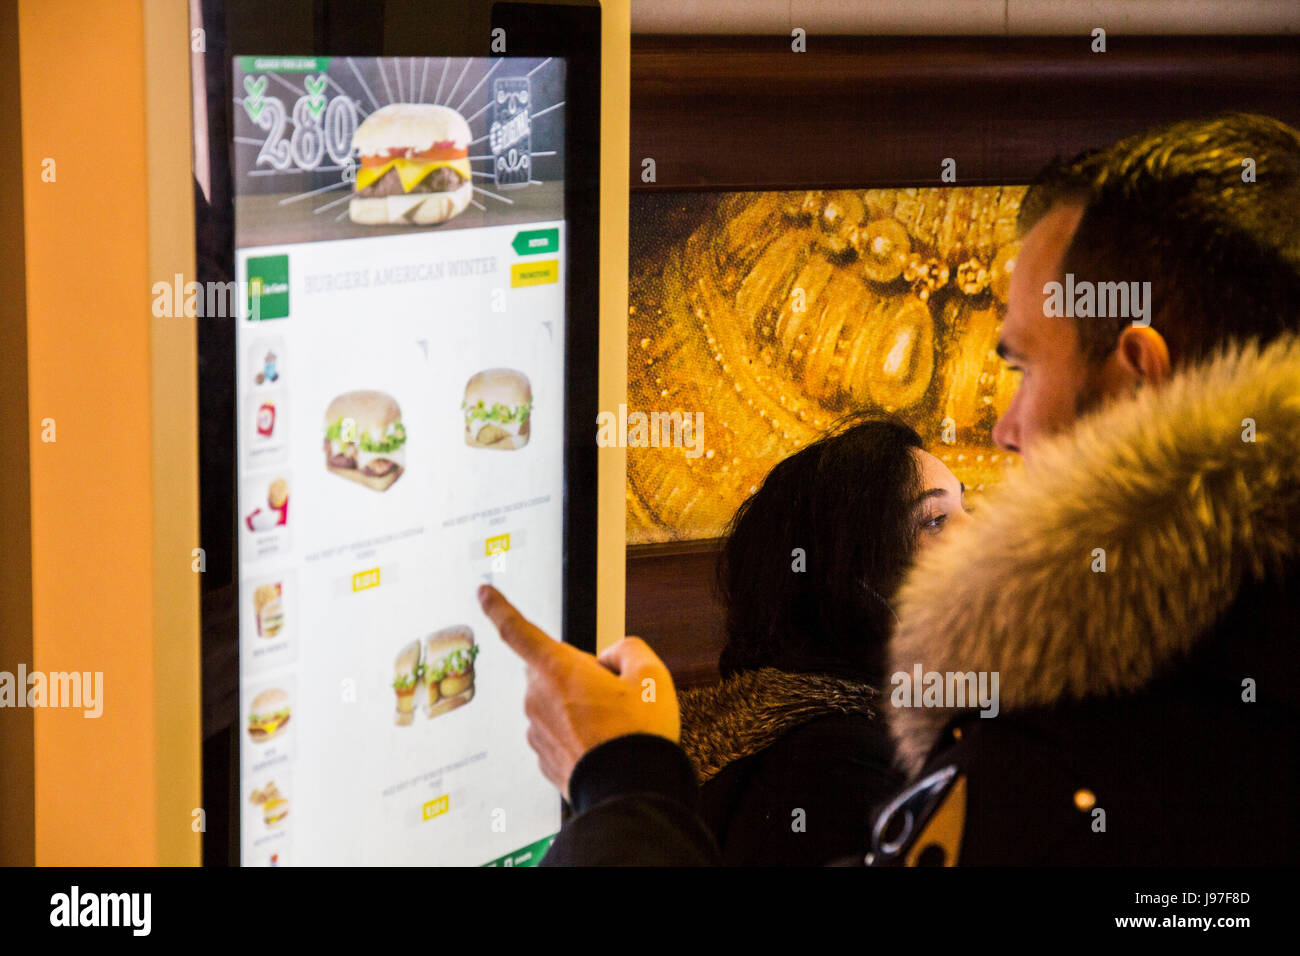 McDonald's is rolling out touch-screen self-ordering kiosks, as seen here in Toulon, France in March, 2016, - Stock Image